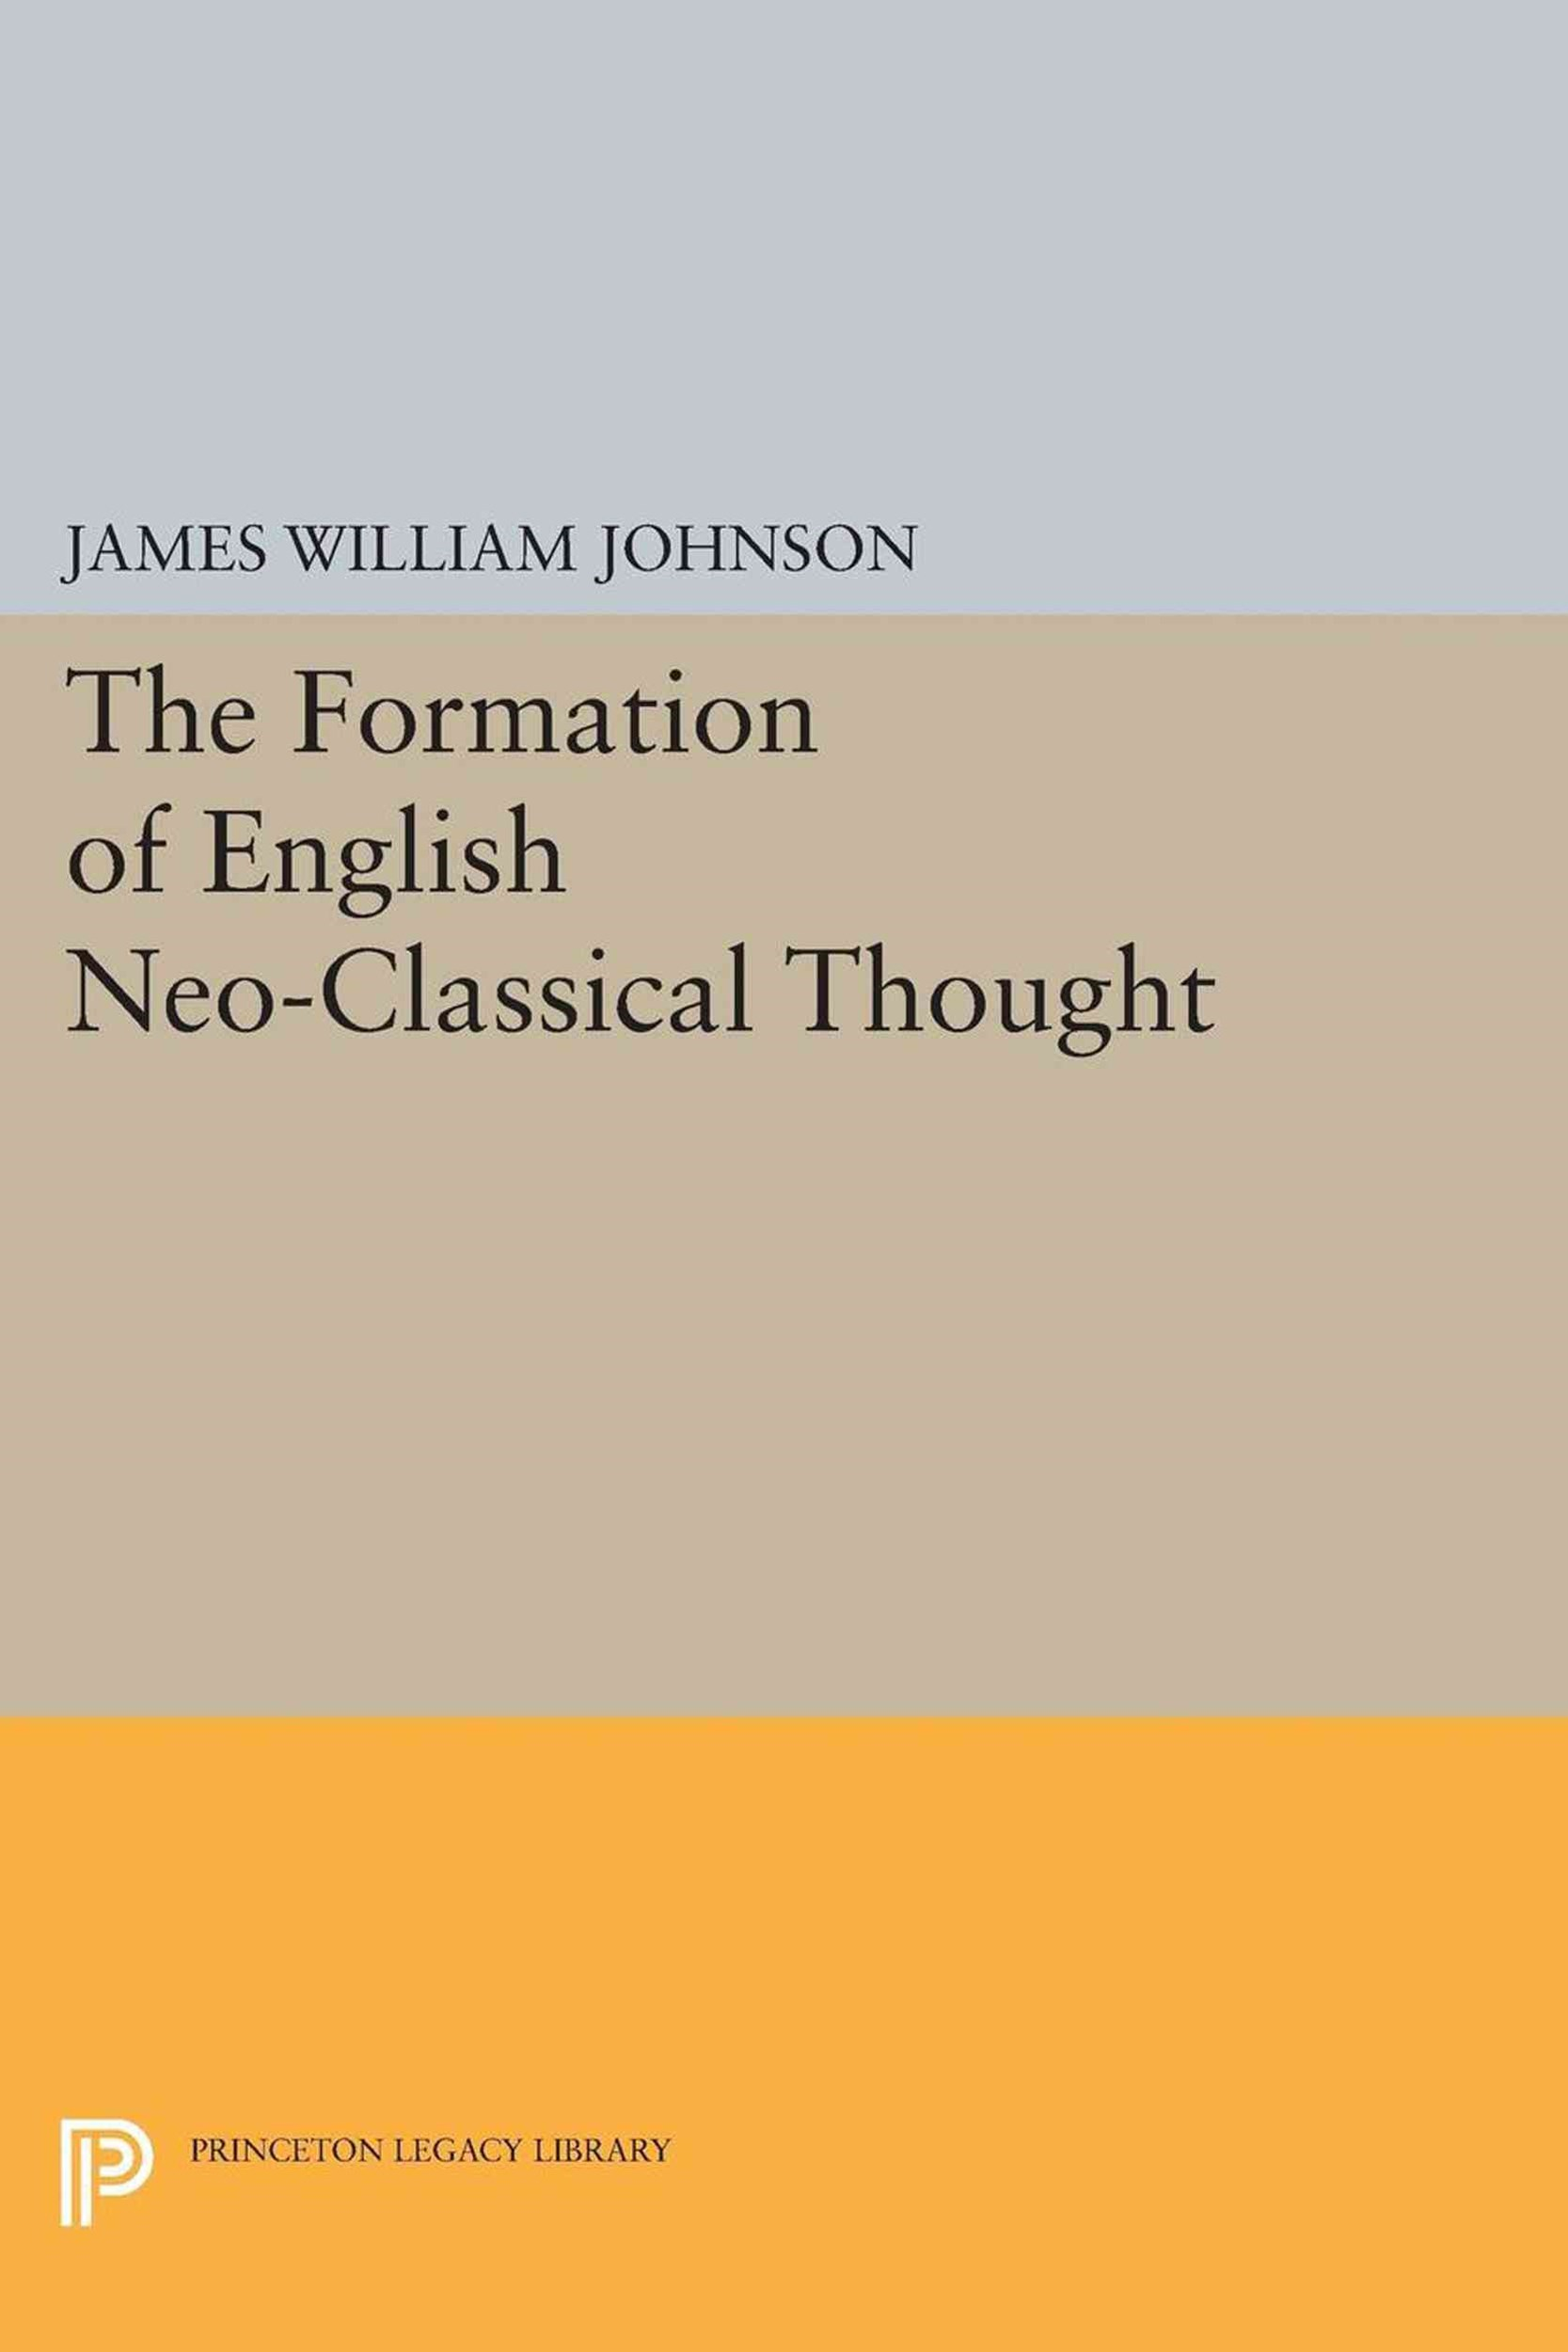 Formation of English Neo-Classical Thought